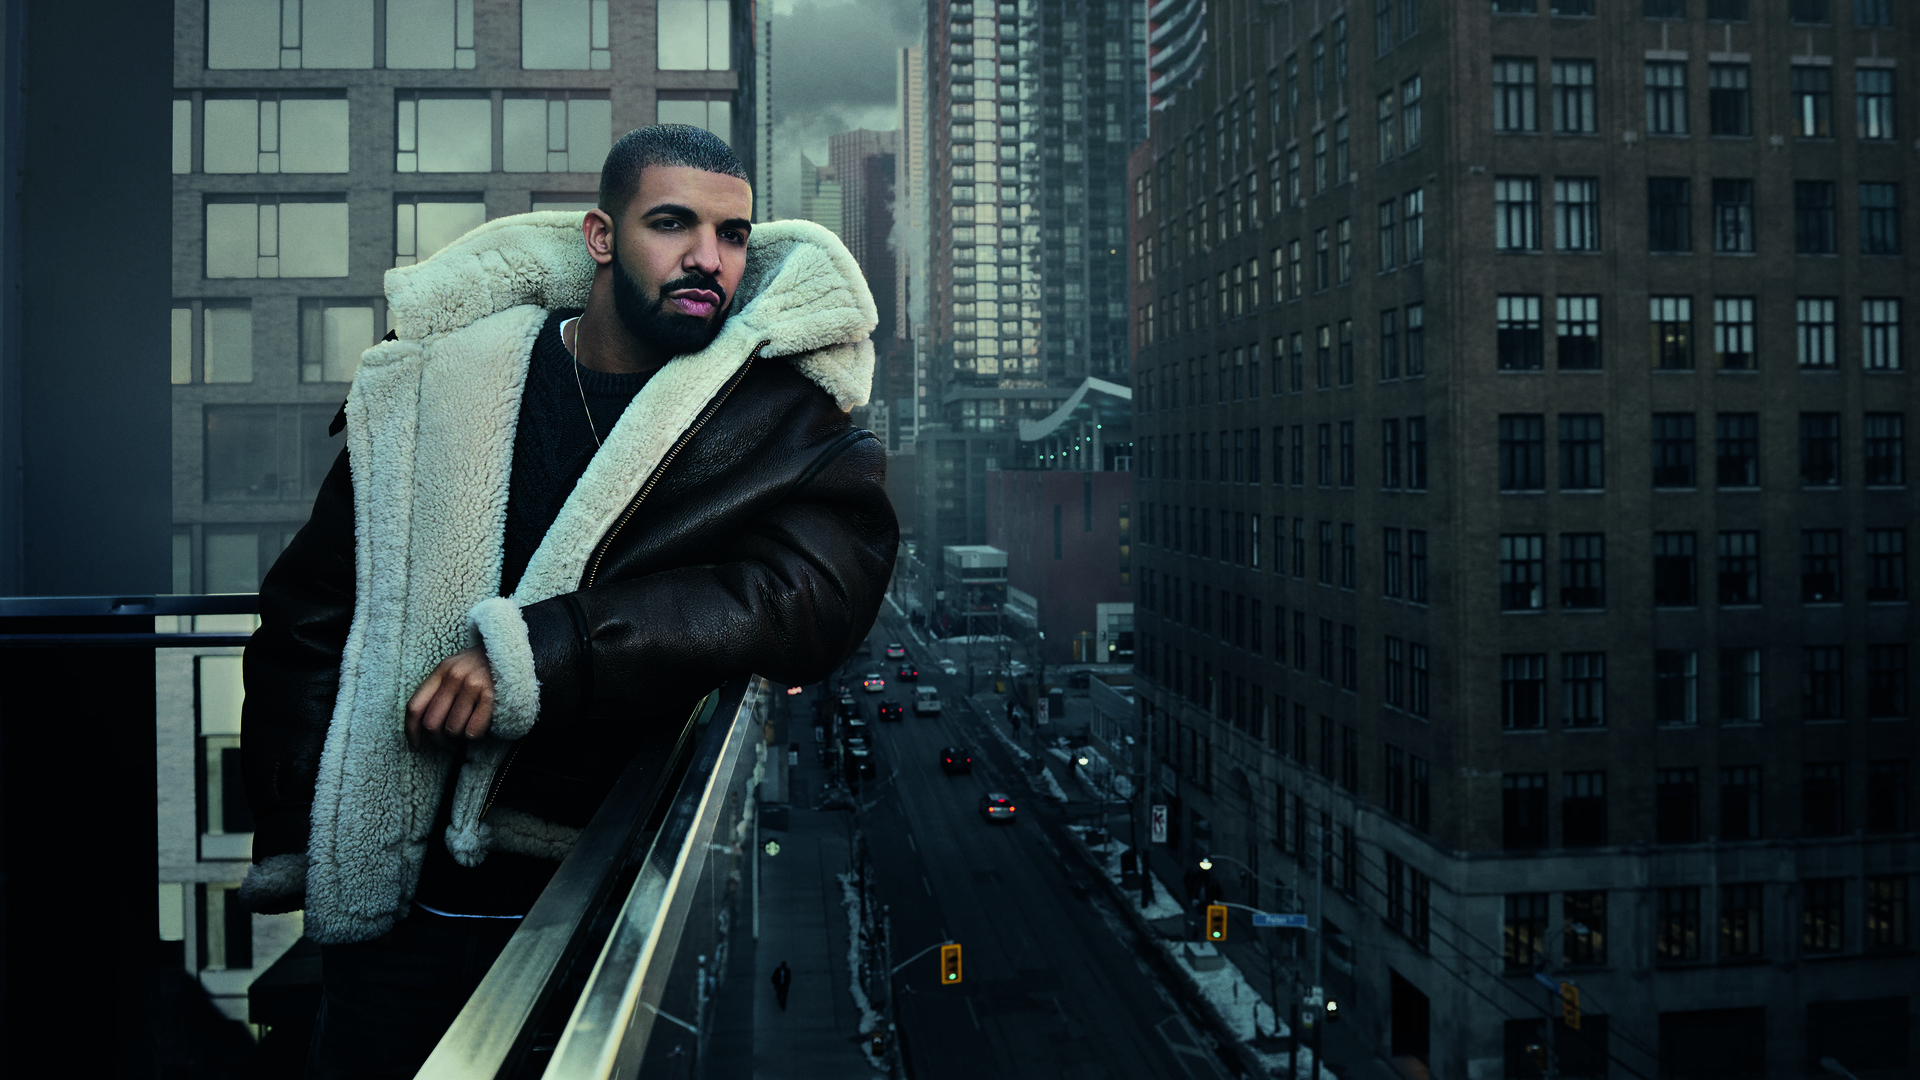 drake singer hd desktop wallpaper 64069